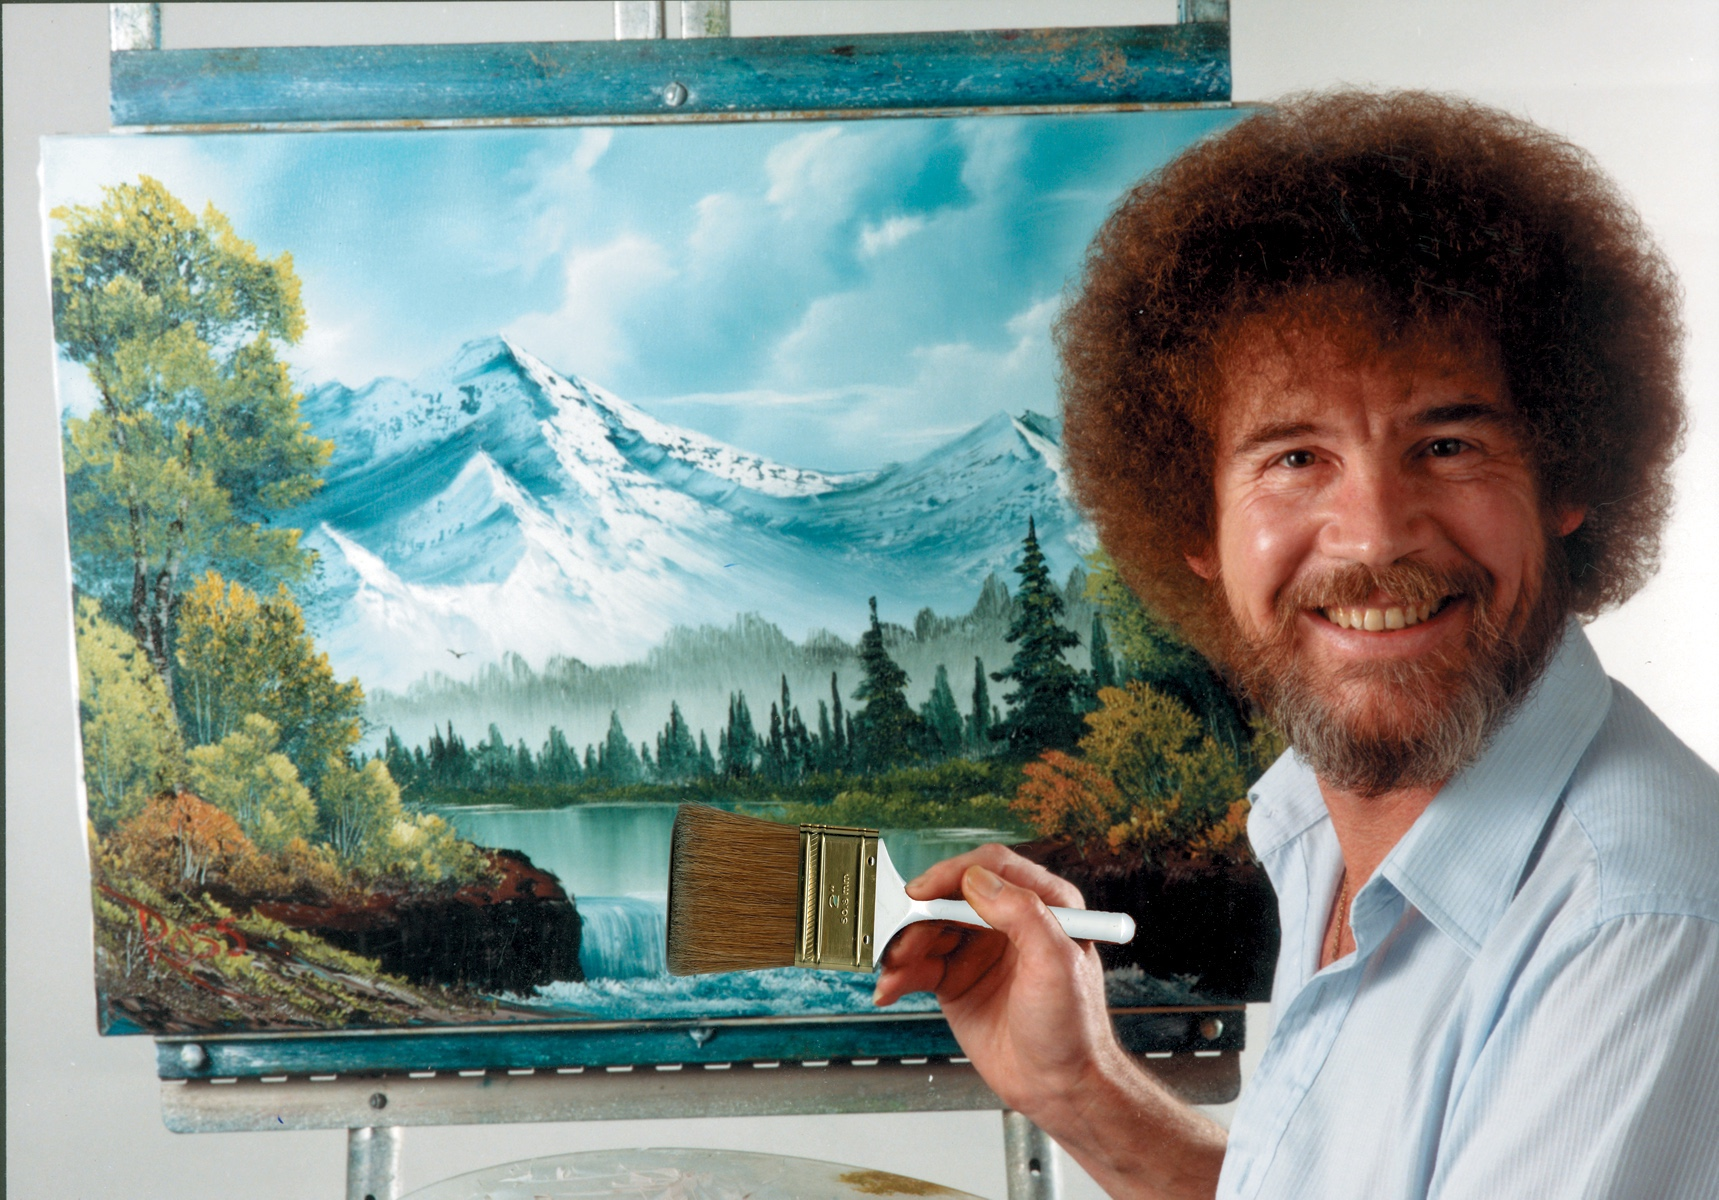 Happy accidents: revisiting the dreamy, DIY world of Bob Ross